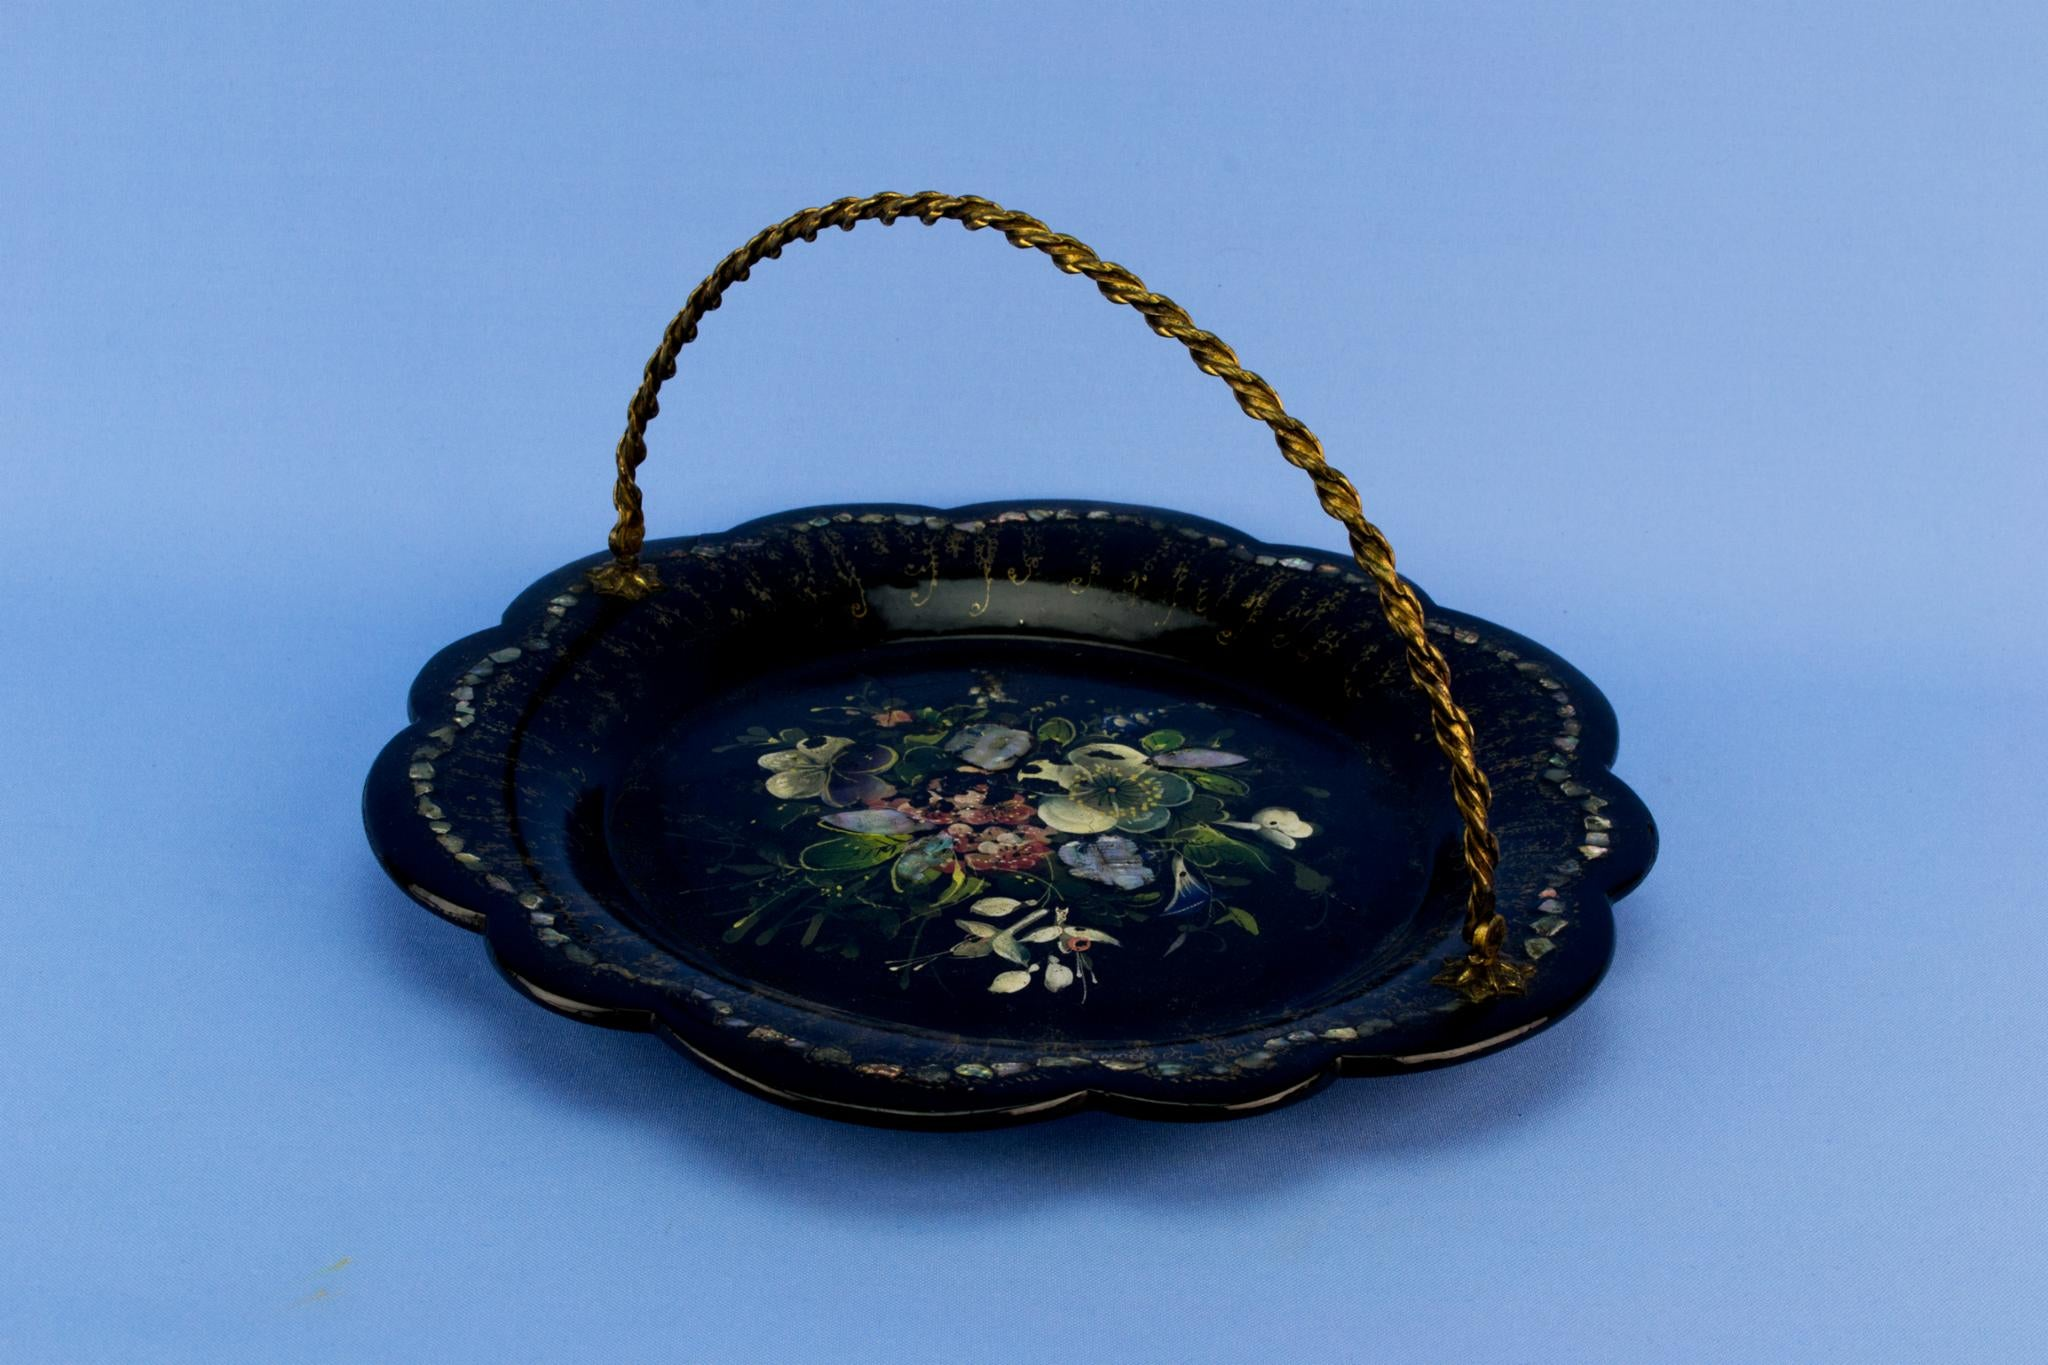 Black papier mache serving dish, English mid 19th century